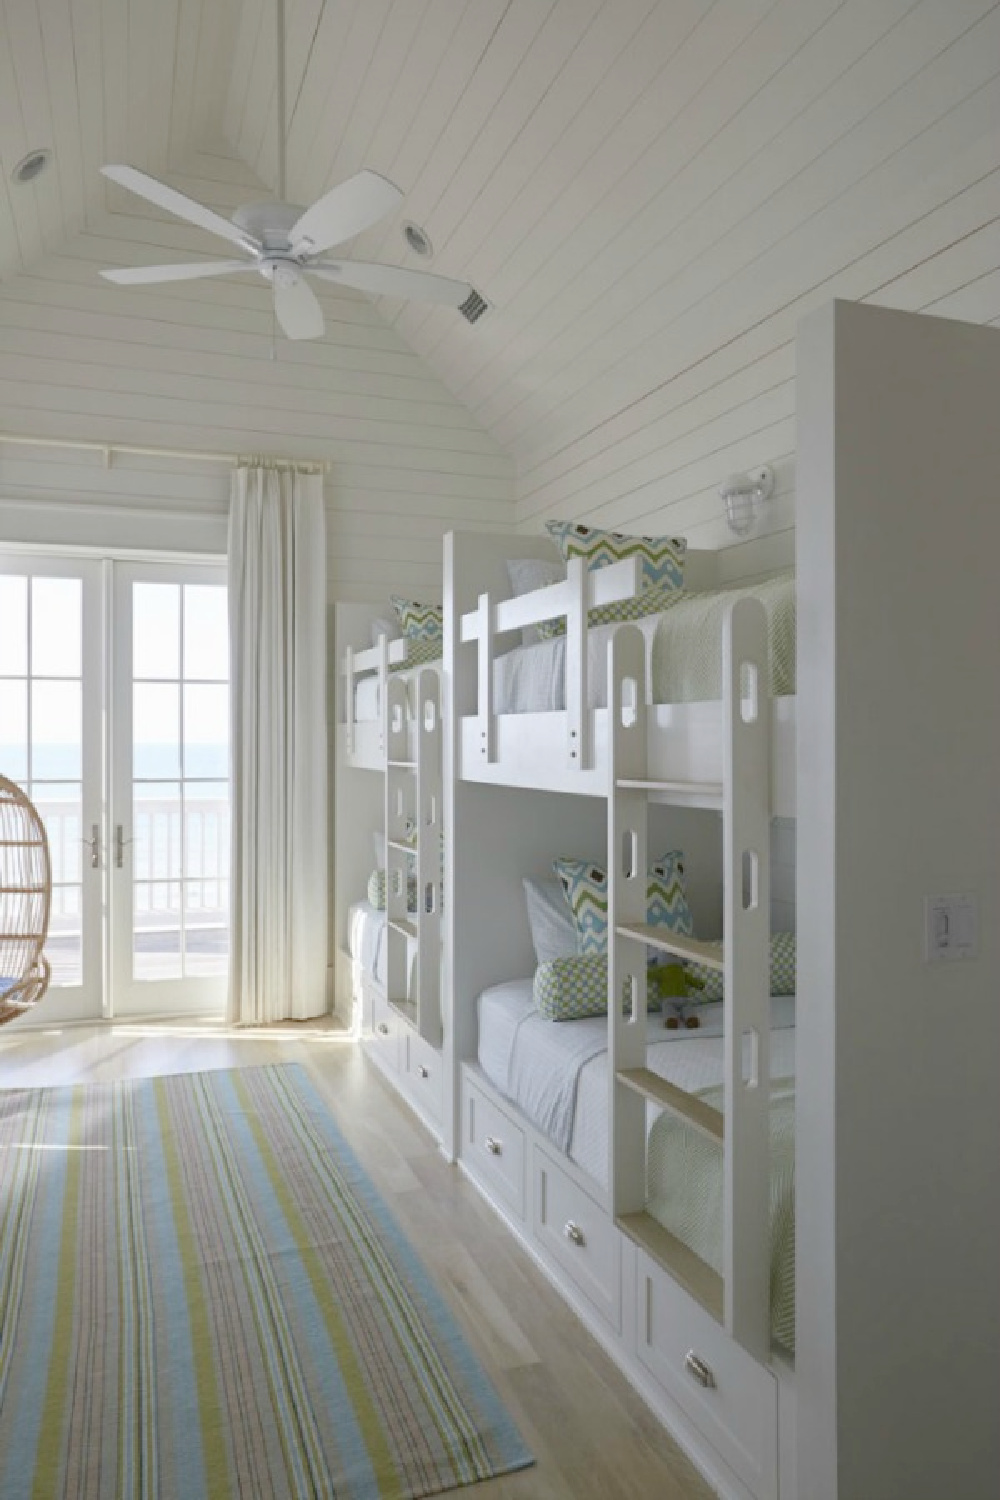 Bunk room in a luxurious coastal home by Geoff Chick.